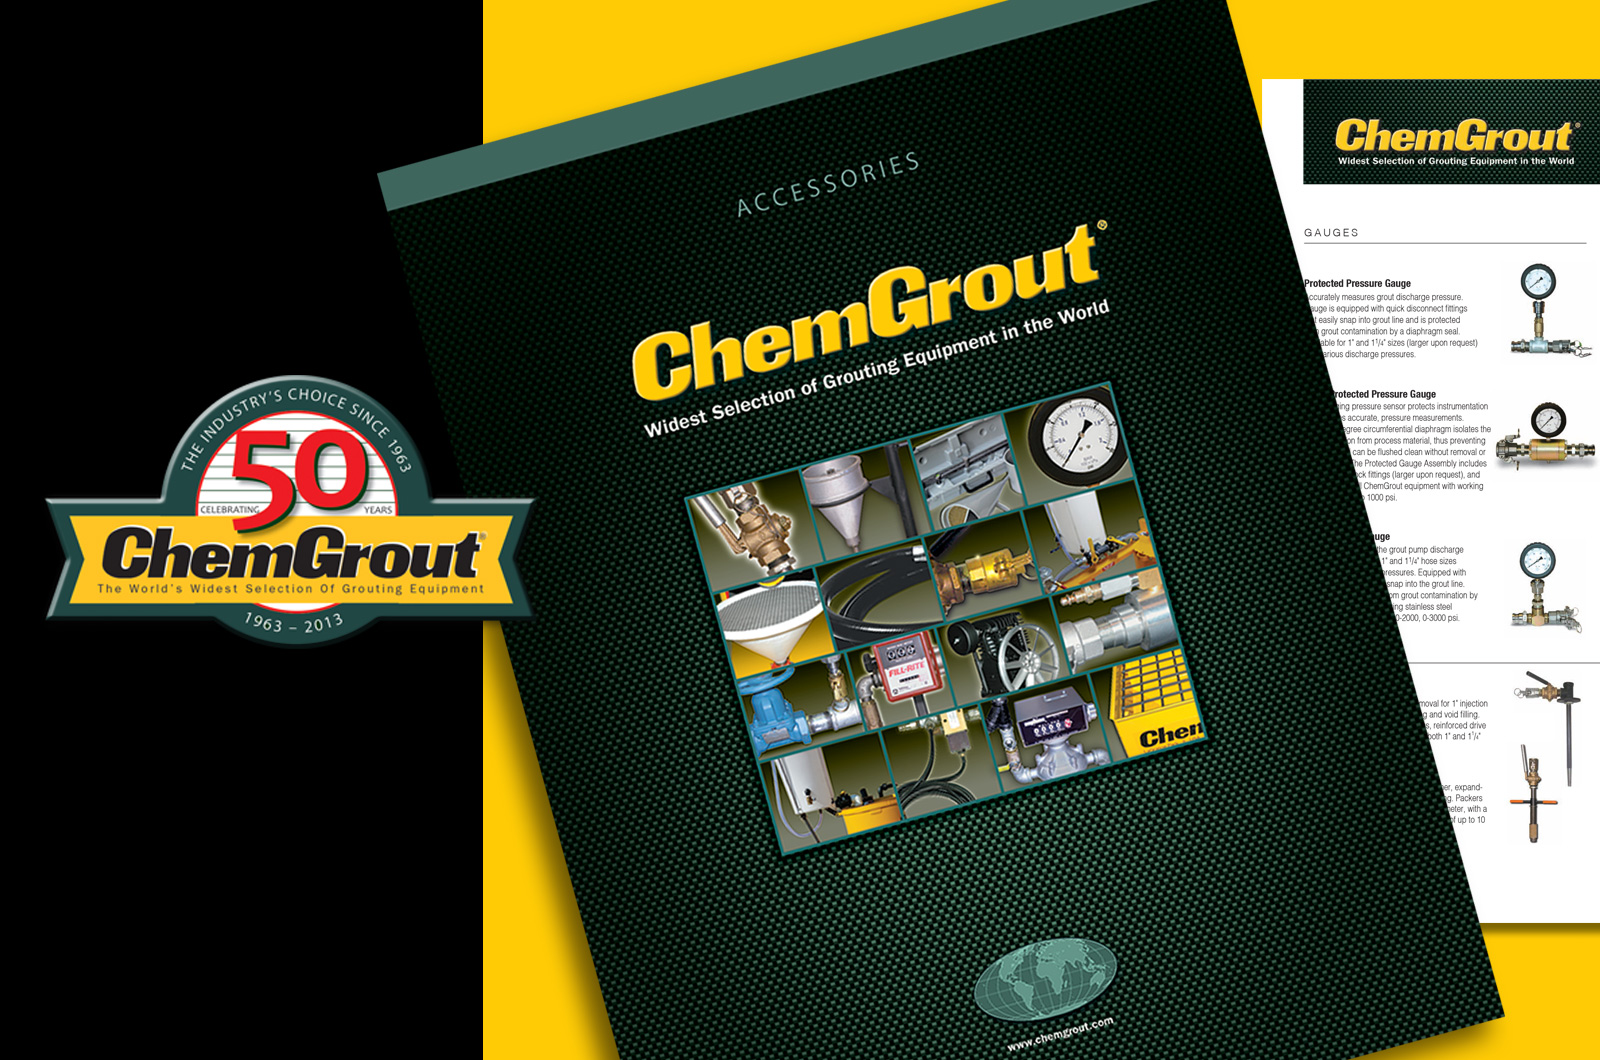 chemgrout-work_web1600